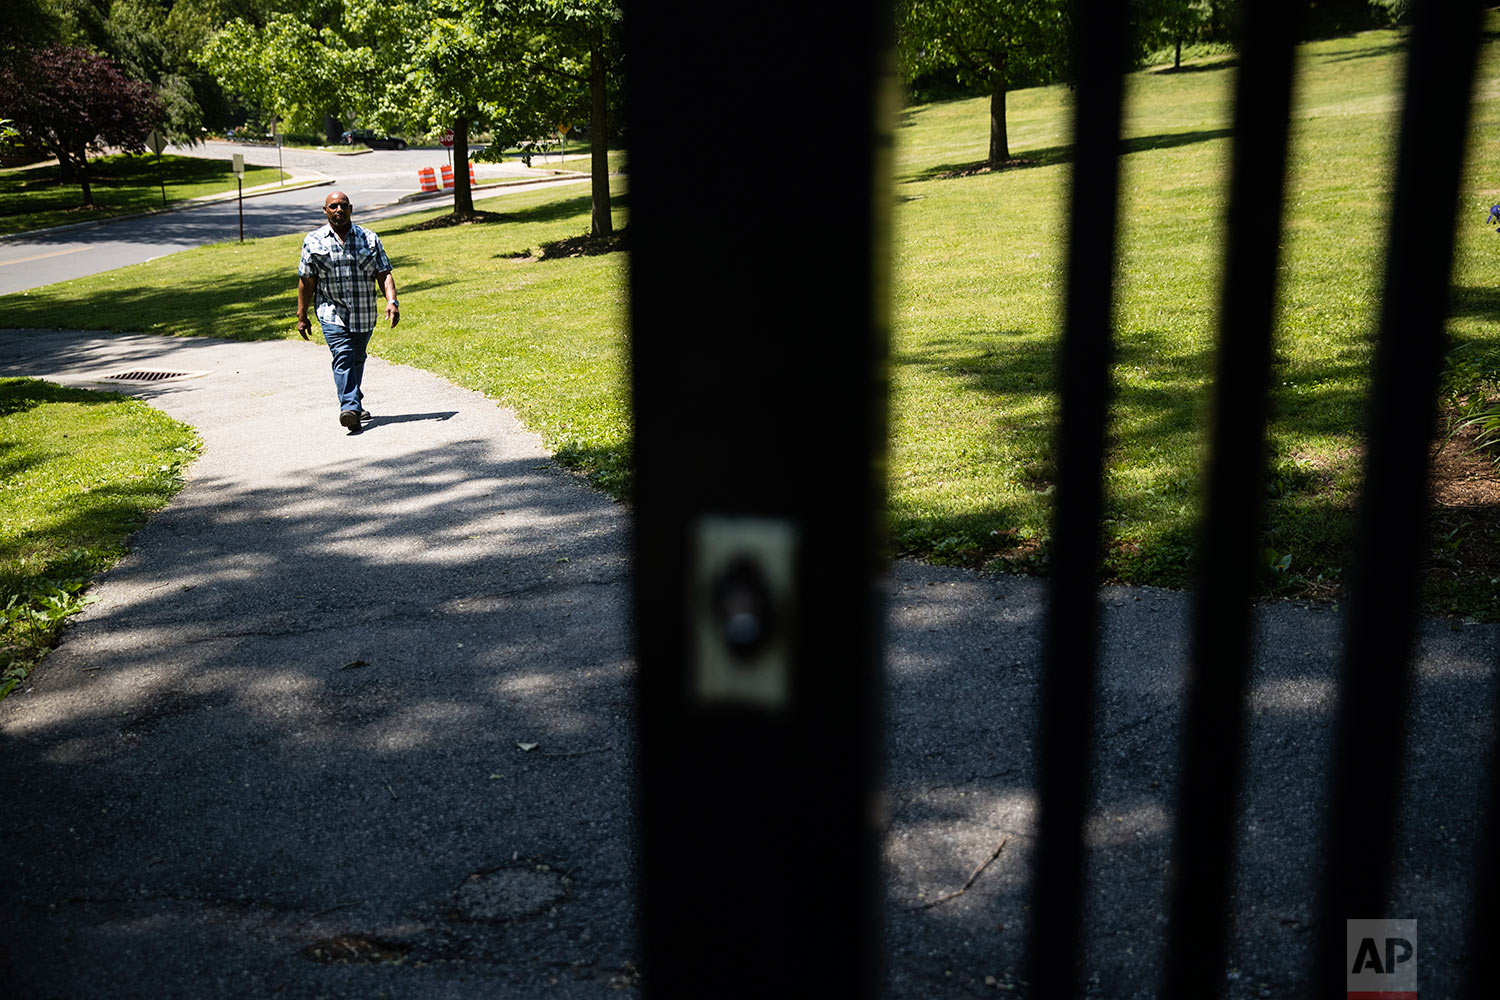 Earl Rice Jr. walks in the park near his home in Wilmington, Del., Thursday, May 18, 2017. In September 1973, Rice and his friend ran toward Ola Danenberg, and Rice snatched her purse. As he took off down an alley, he says he looked back to see Danenberg fall to her knees. Two days later, hearing police were looking for him, Rice went to the police station and confessed to robbery. That's when detectives told him Danenberg had hit her head on the sidewalk and died. They charged him with murder. (AP Photo/Matt Rourke)